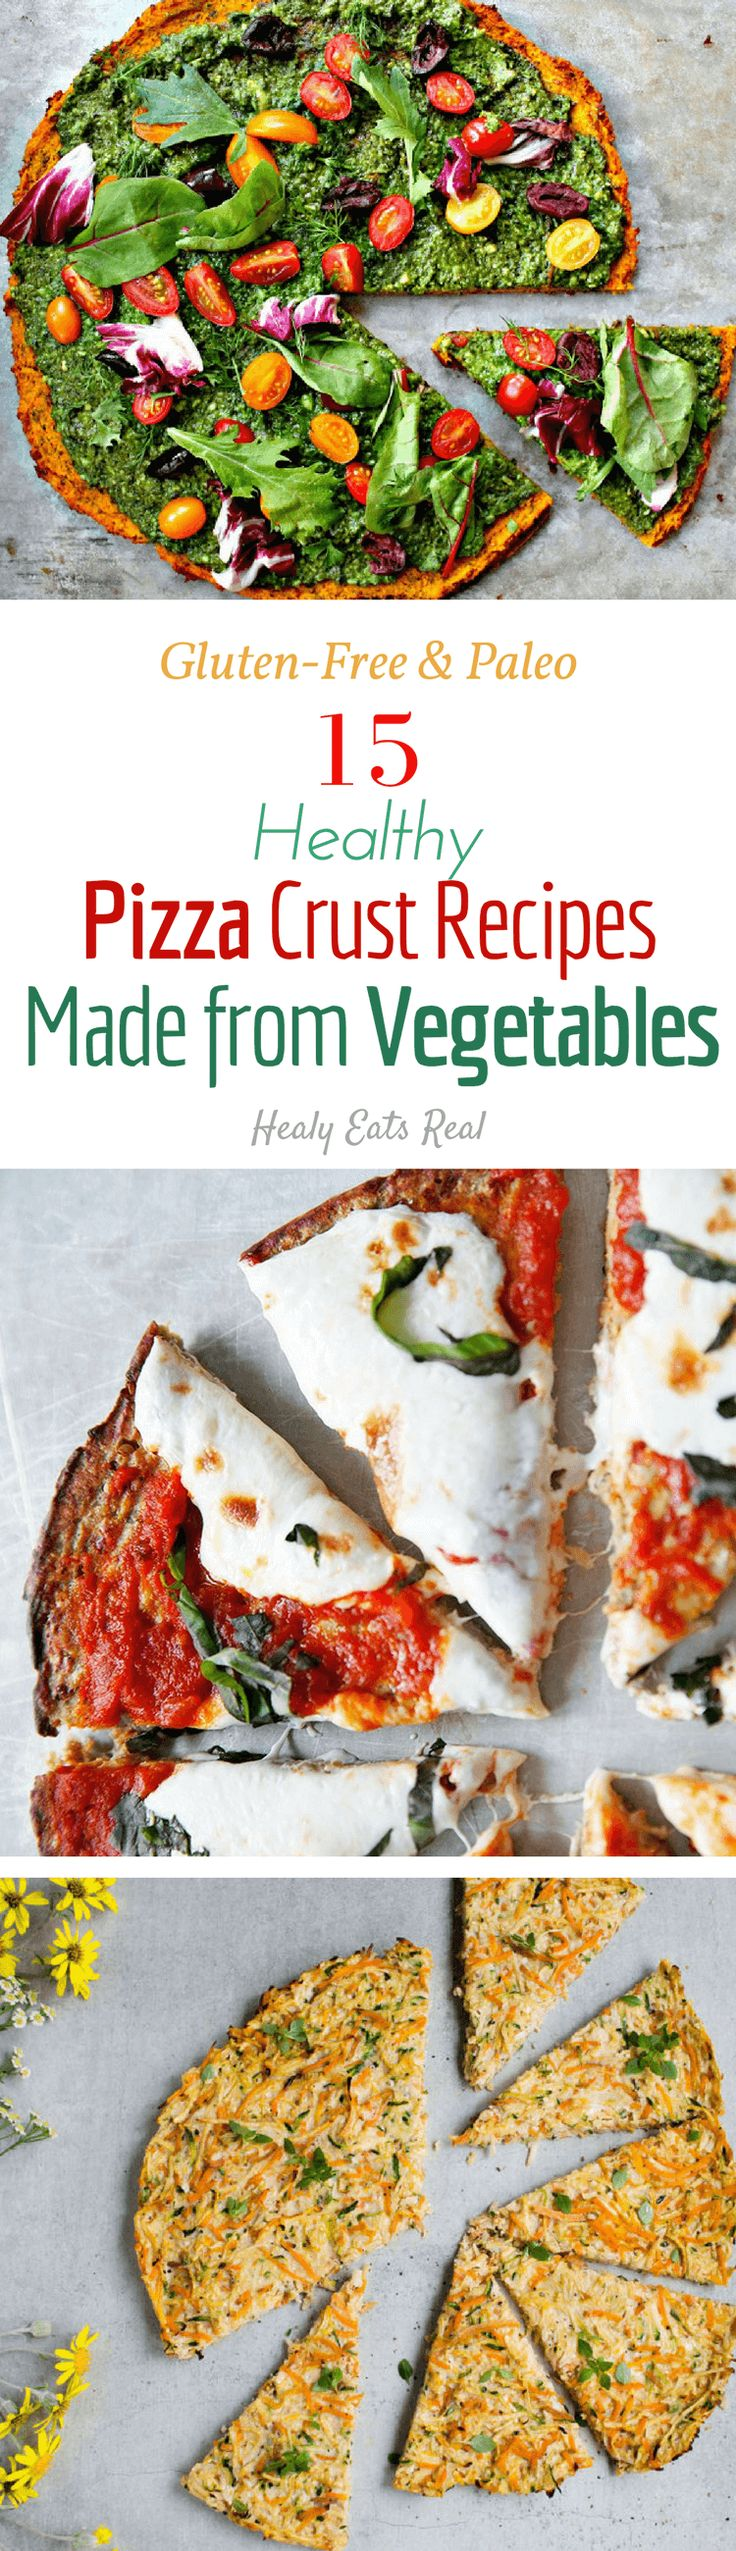 15 Healthy Pizza Crust Recipes Made from Vegetables- Gluten Free & Paleo----- Great nutritious lunch or dinner recipes here, especially for kids!